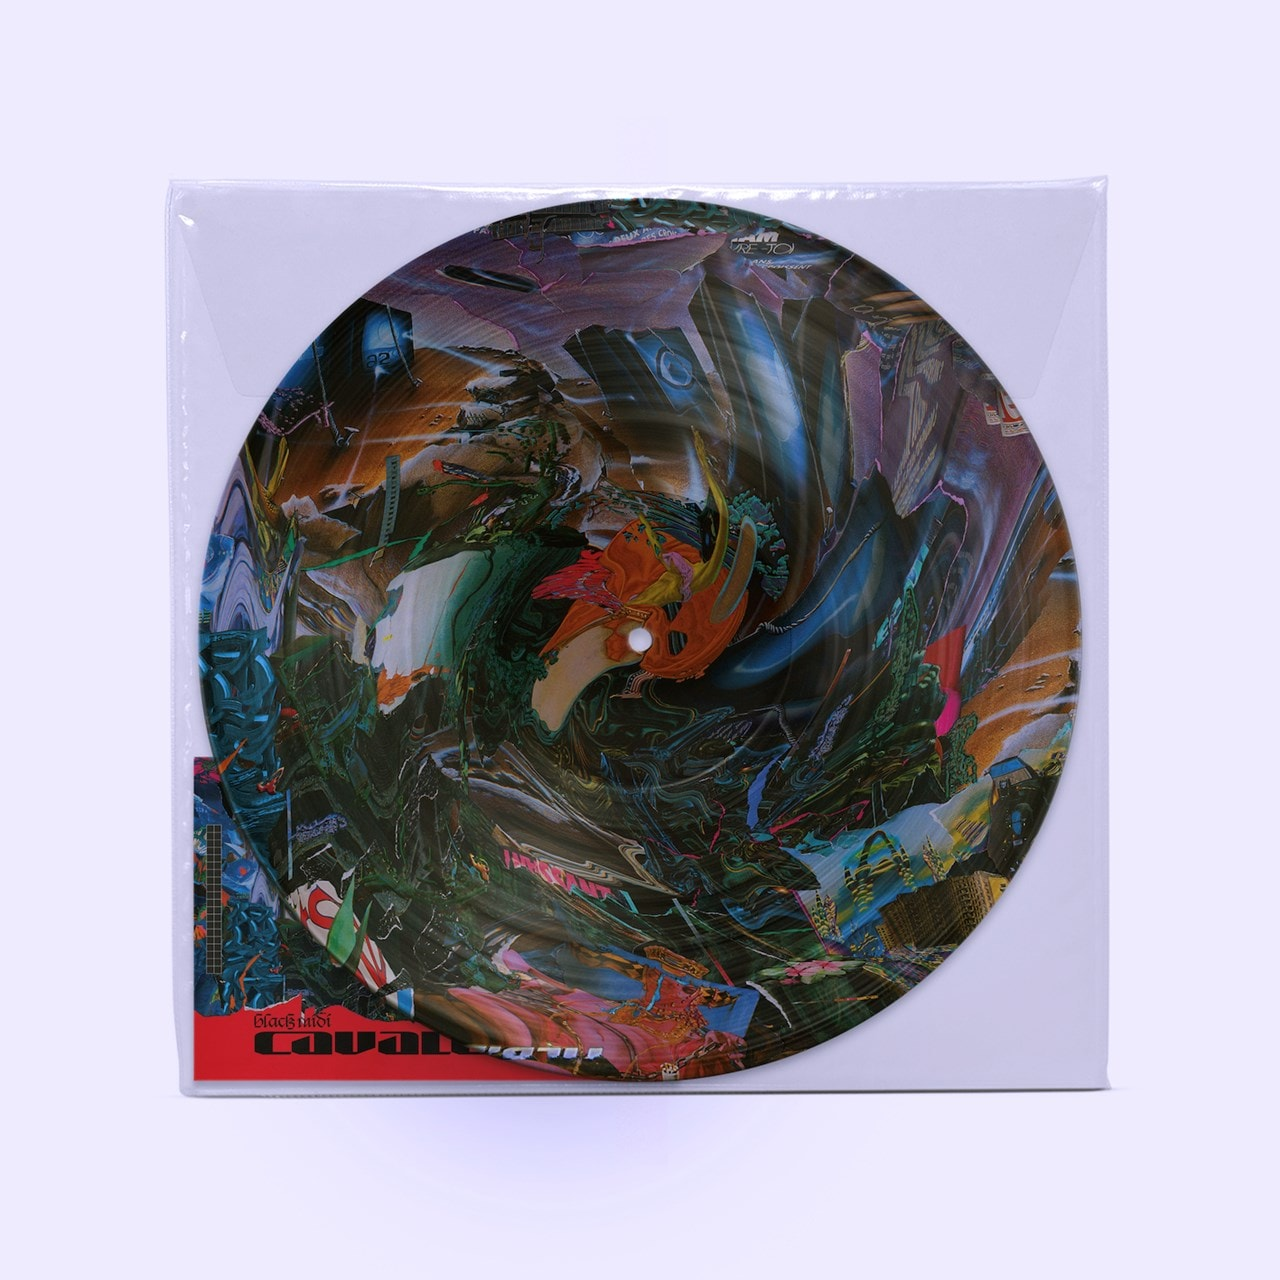 Cavalcade - Limited Edition Picture Disc - 1